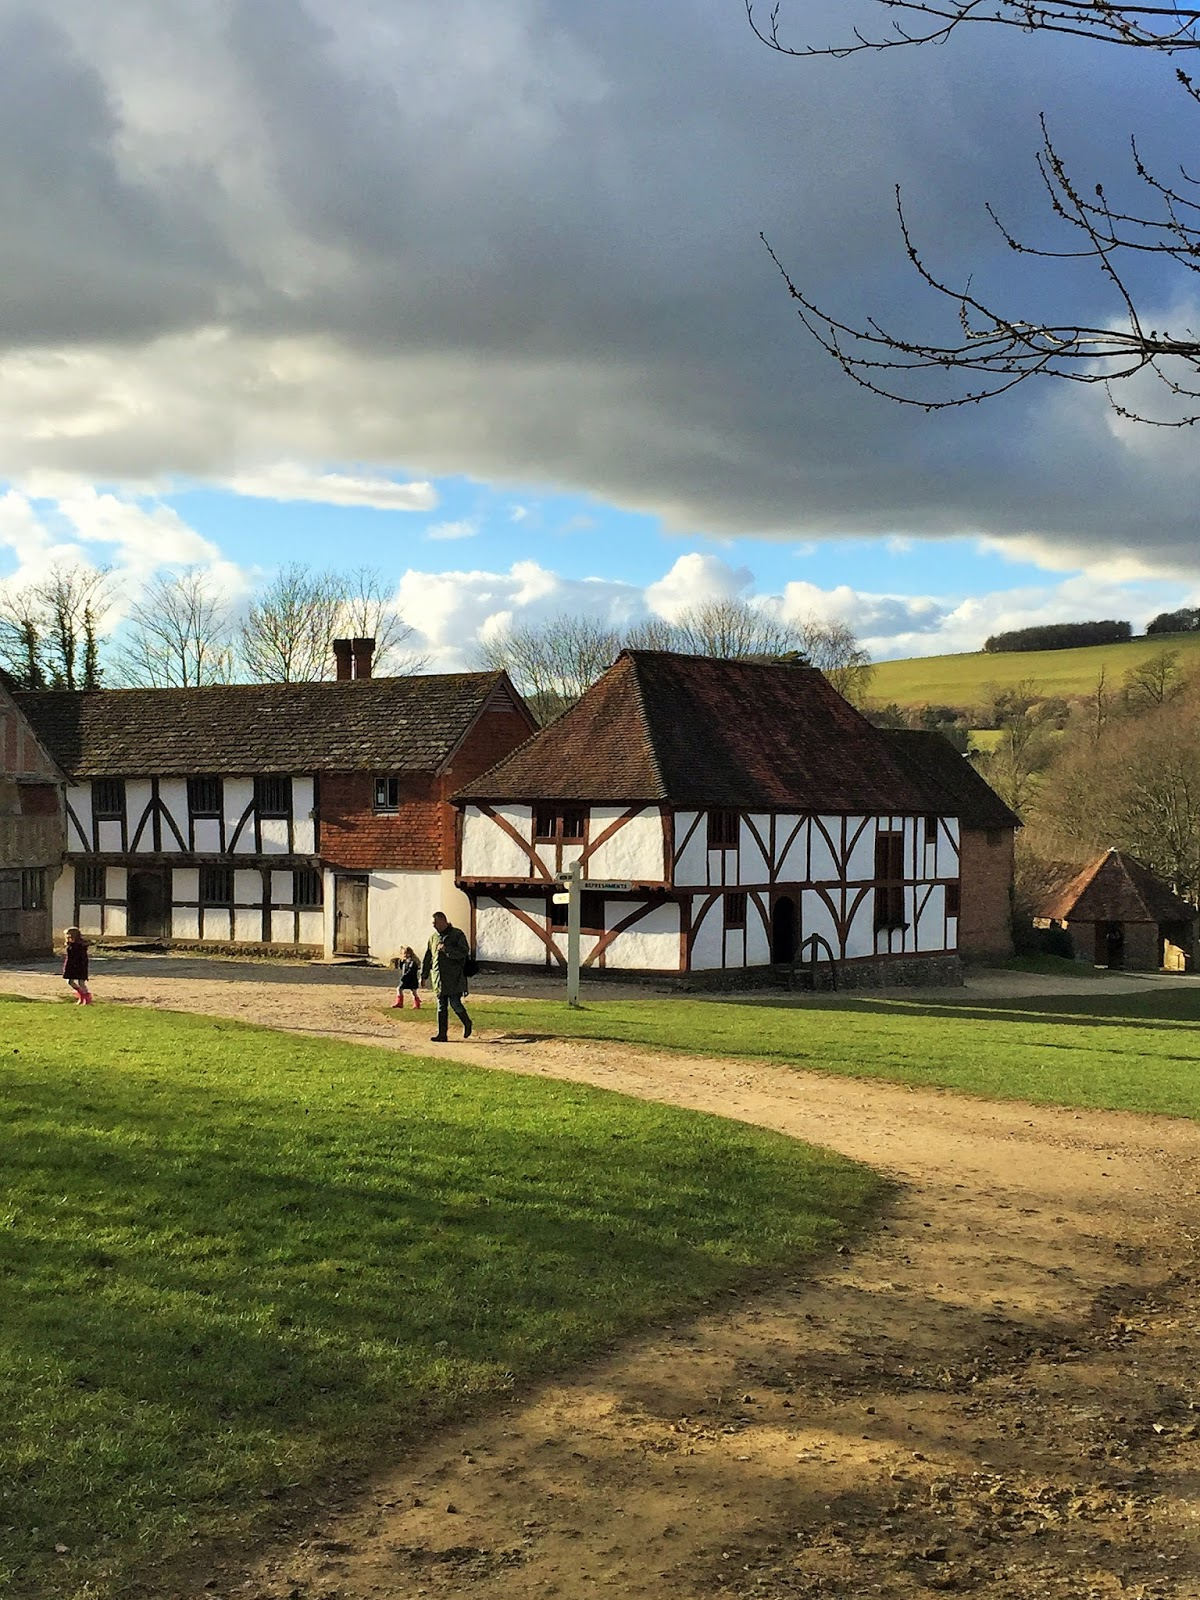 Weald and Downland Museum, photo by Modern Bric a Brac